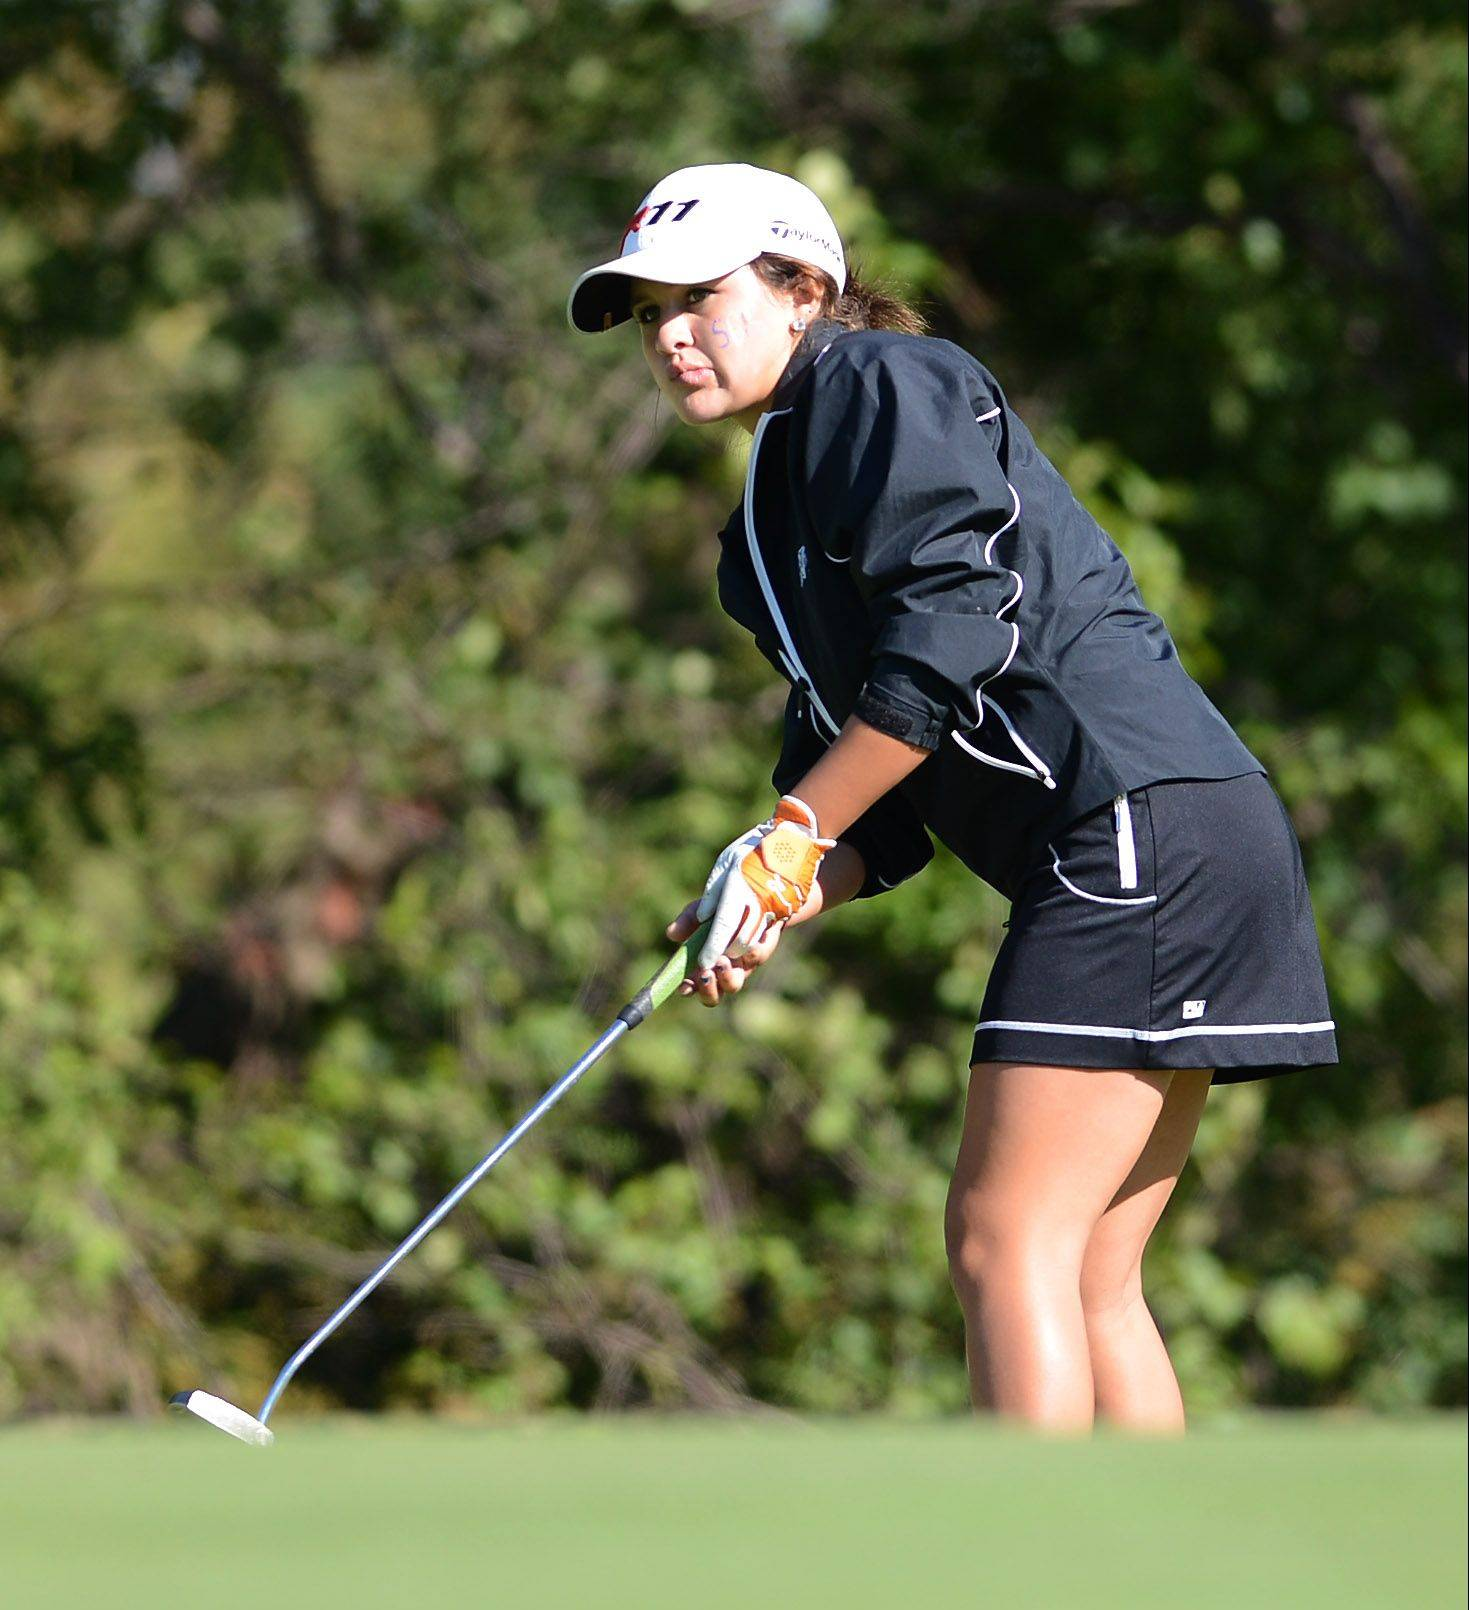 St. Charles North's Gianna Furrie watches her putt during Monday's Upstate Eight Conference meet in West Chicago.